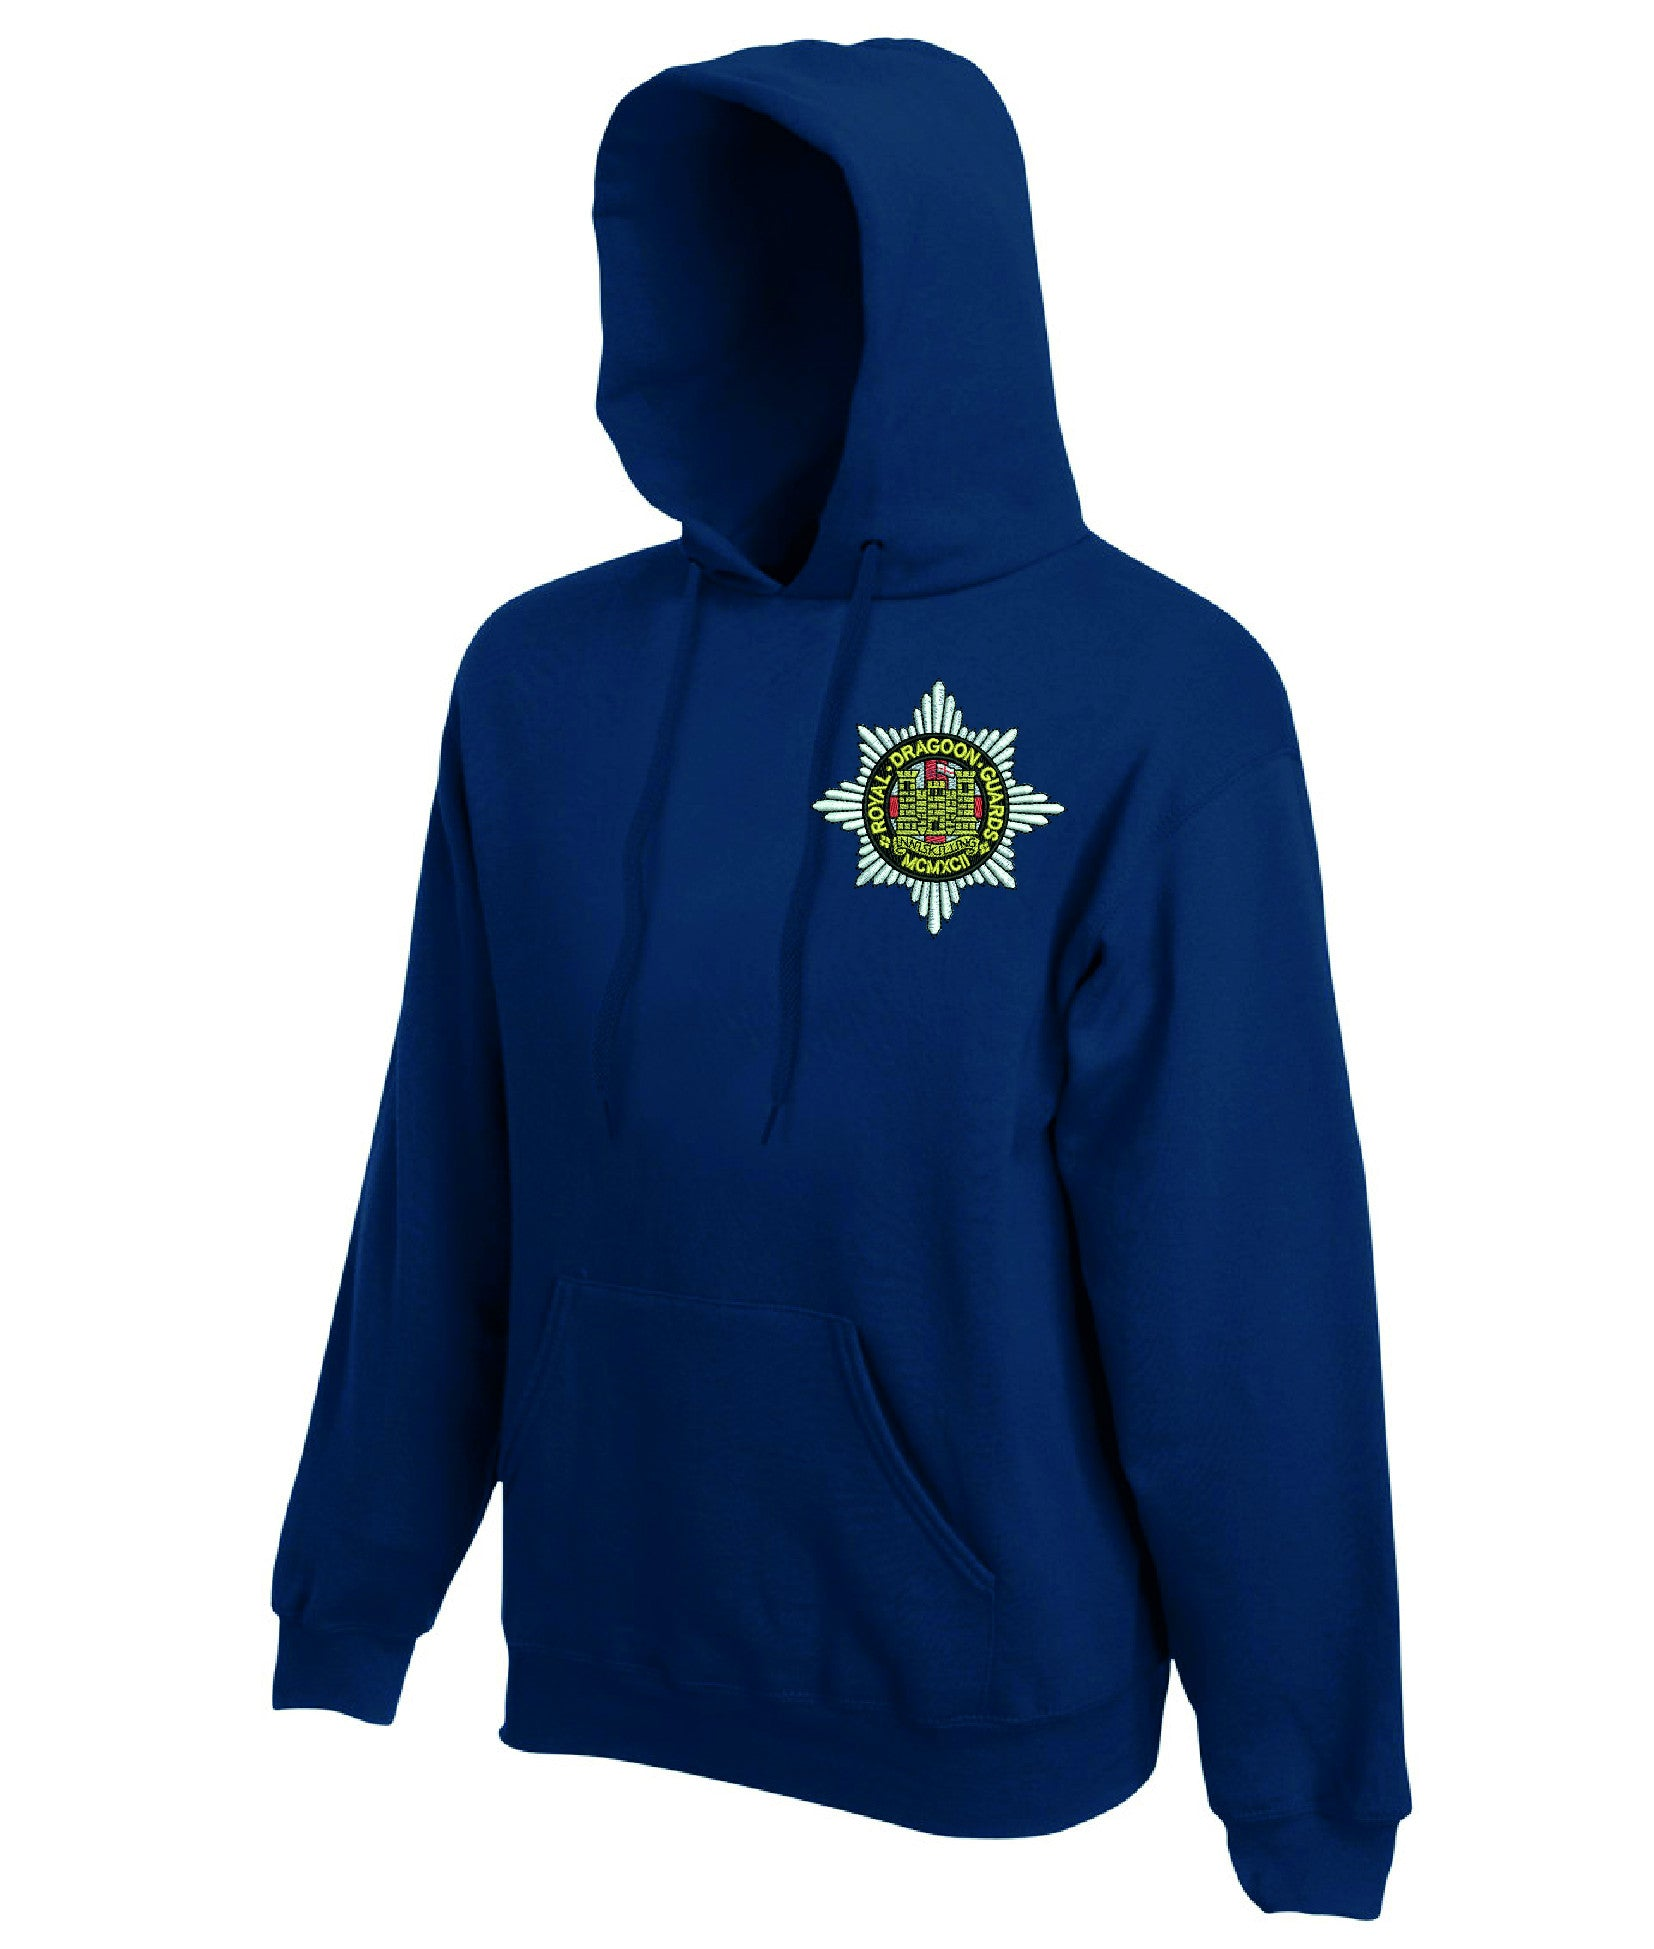 Royal Dragoon Guards Hoodie